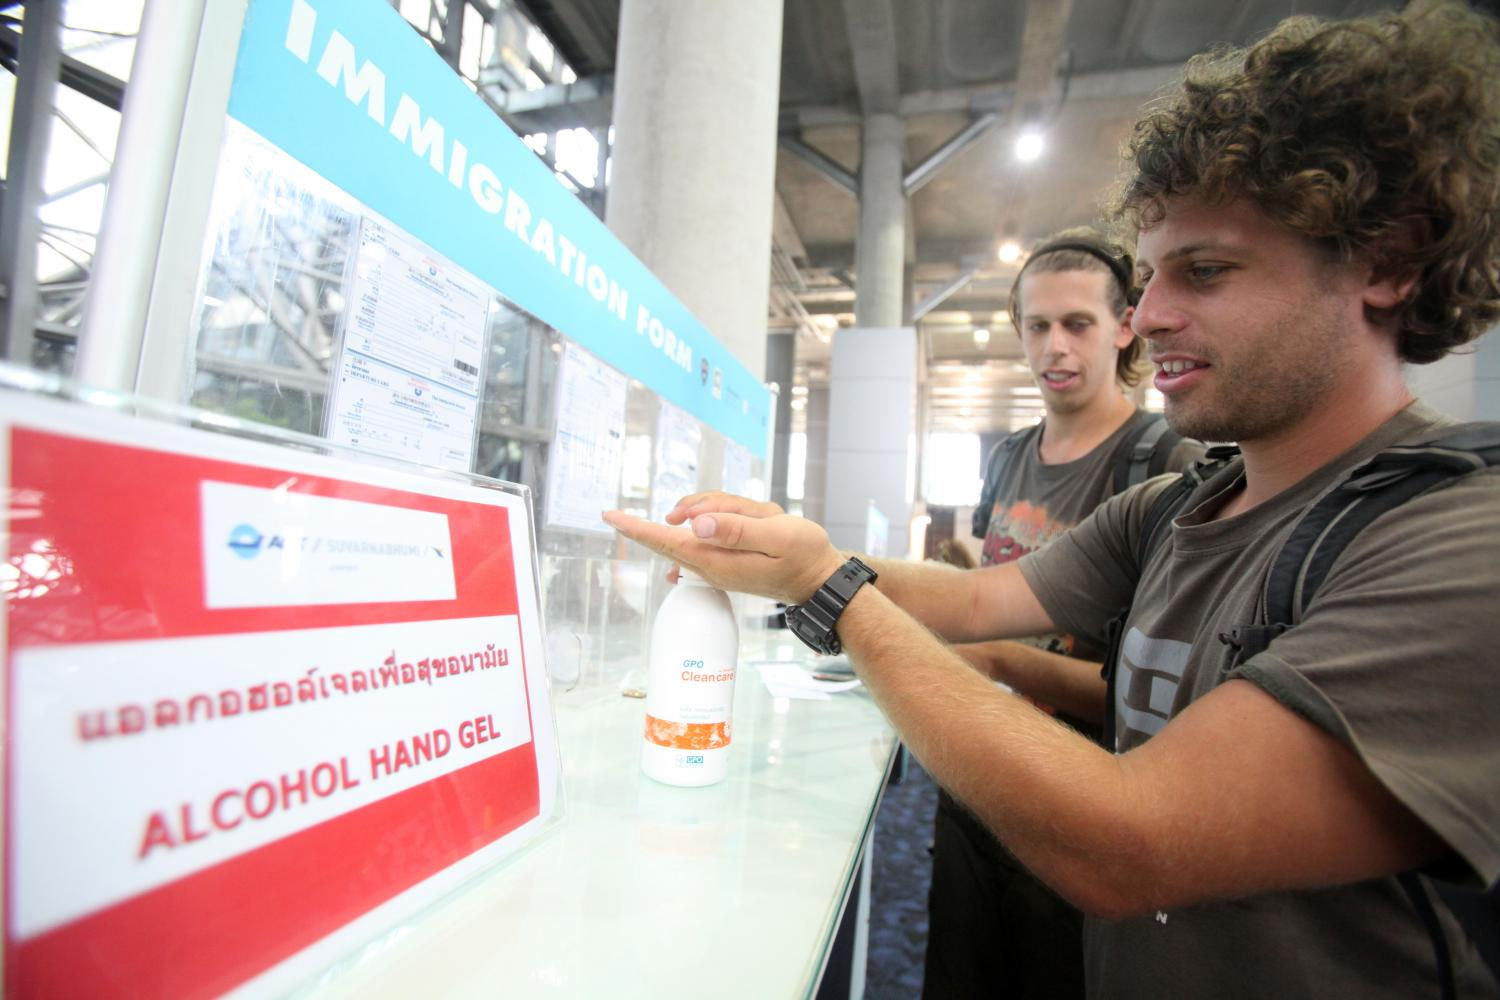 Tourists use alcohol-based hand sanitiser at Suvarnabhumi airport as demand for alcohol disinfectant has surged since the outbreak. (Photo by Taweechai Tawatpakorn)